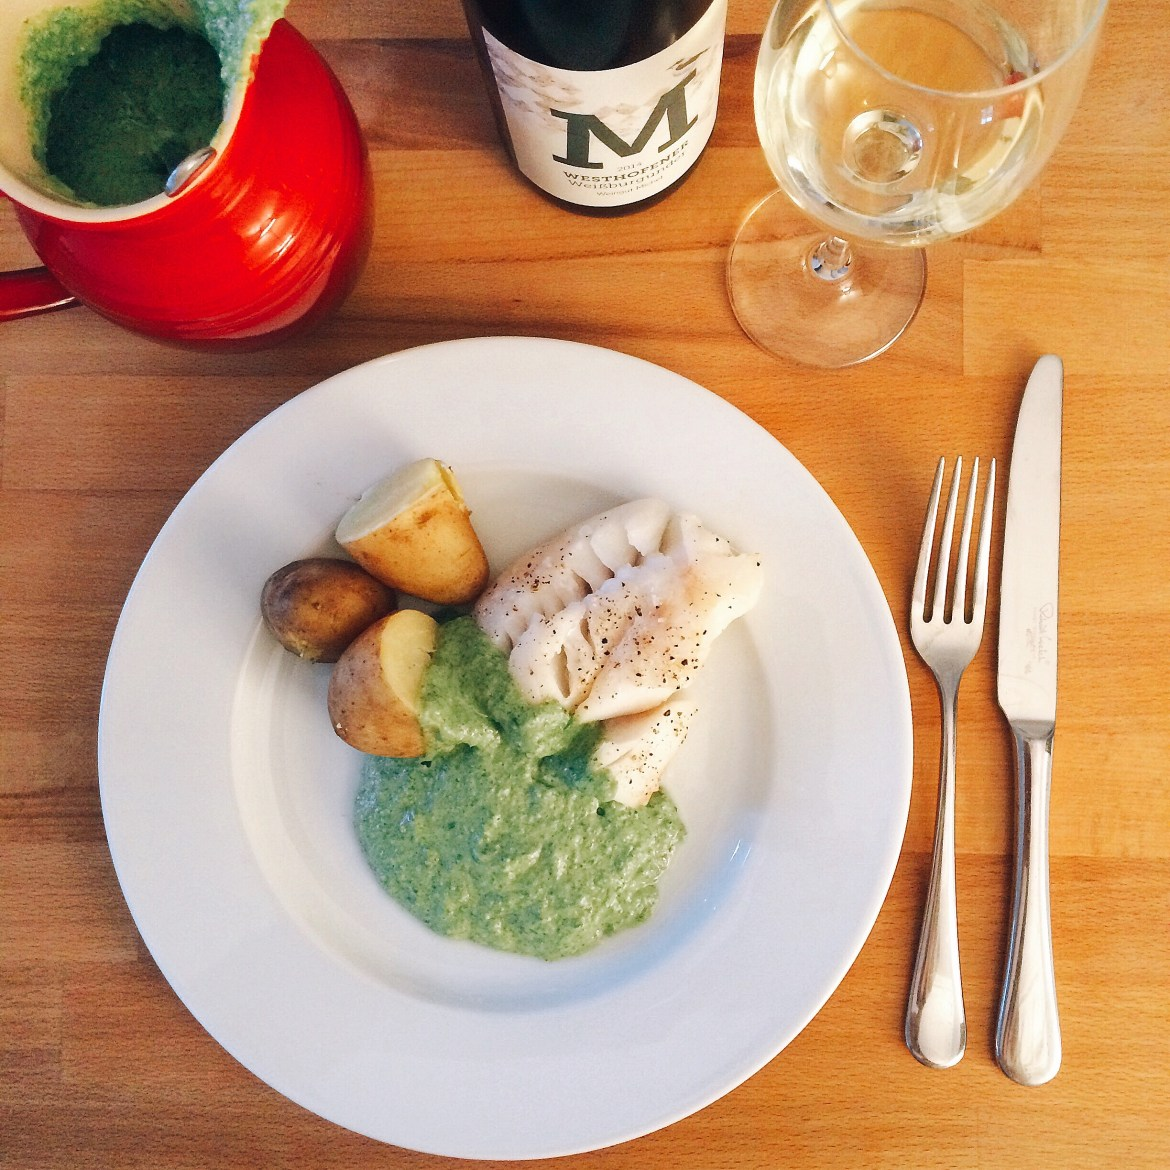 Wine bottle, glass, a jug and a plate of white fish with Grüne Soße and potatoes